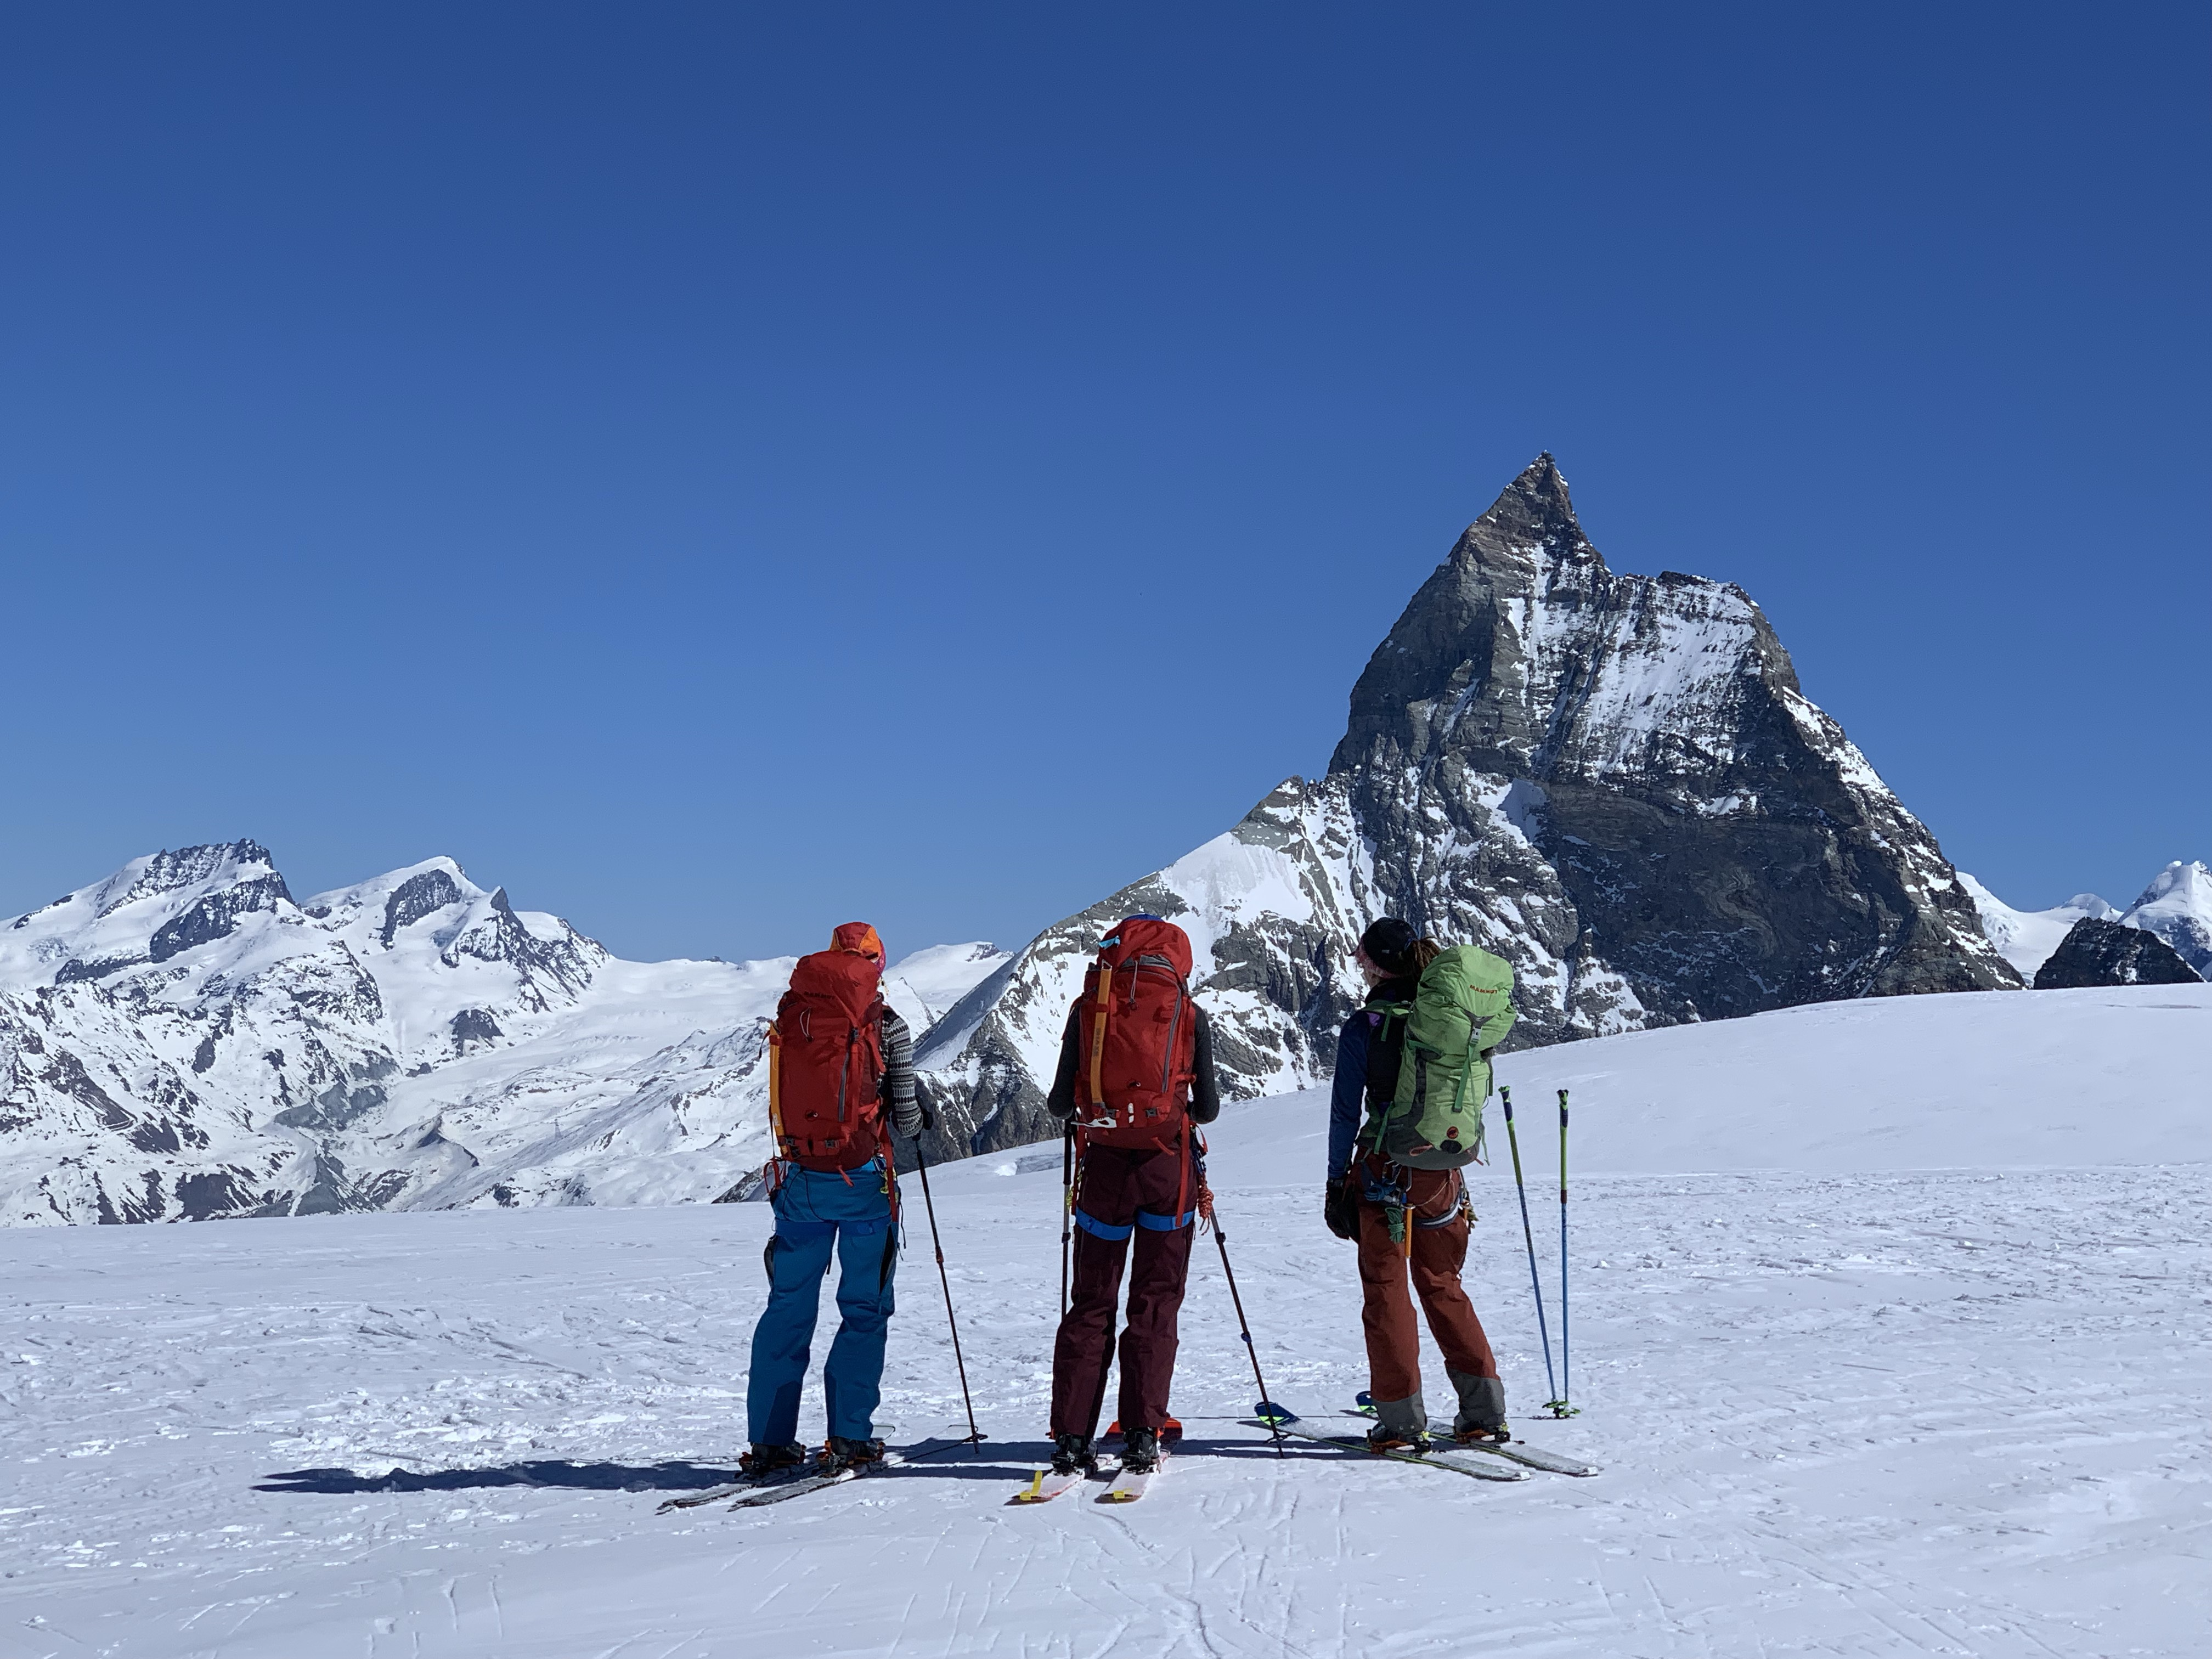 Where skiing meets climbing. A view of the Matterhorn from the Haute Route.